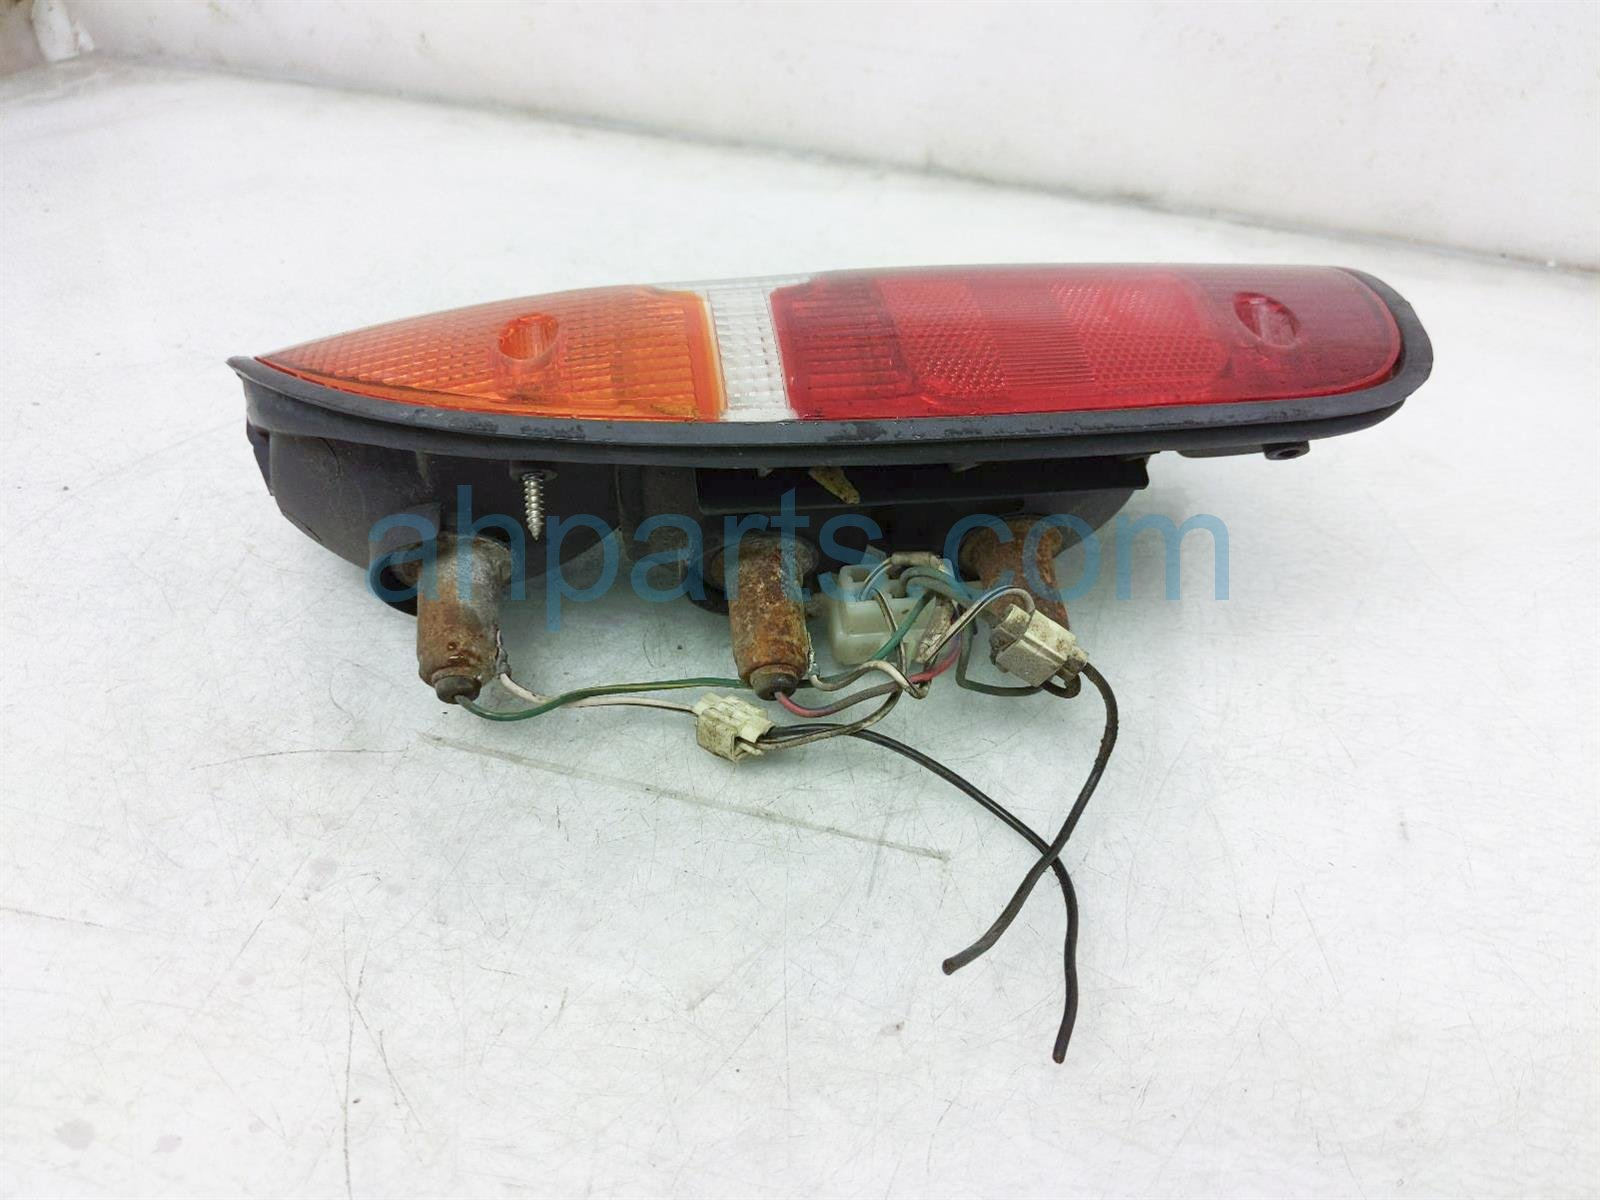 2000 Toyota Tacoma Light / Rear Driver Tail Lamp (on Body) 81560 04030 Replacement